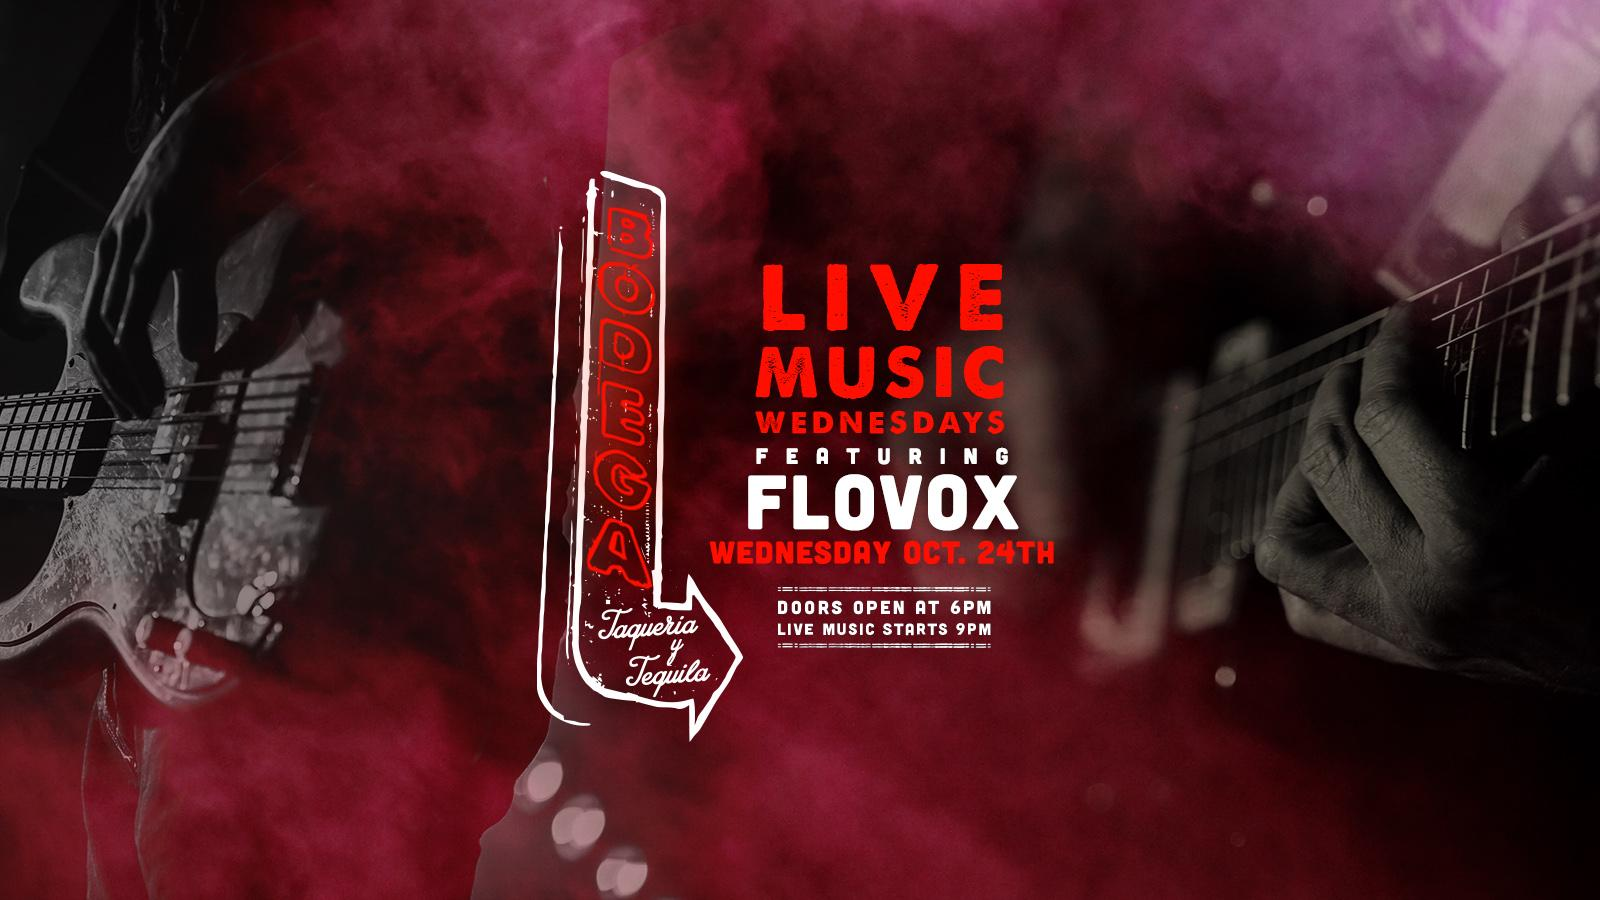 Live Music by FloVox at Bodega Taqueria y Tequila